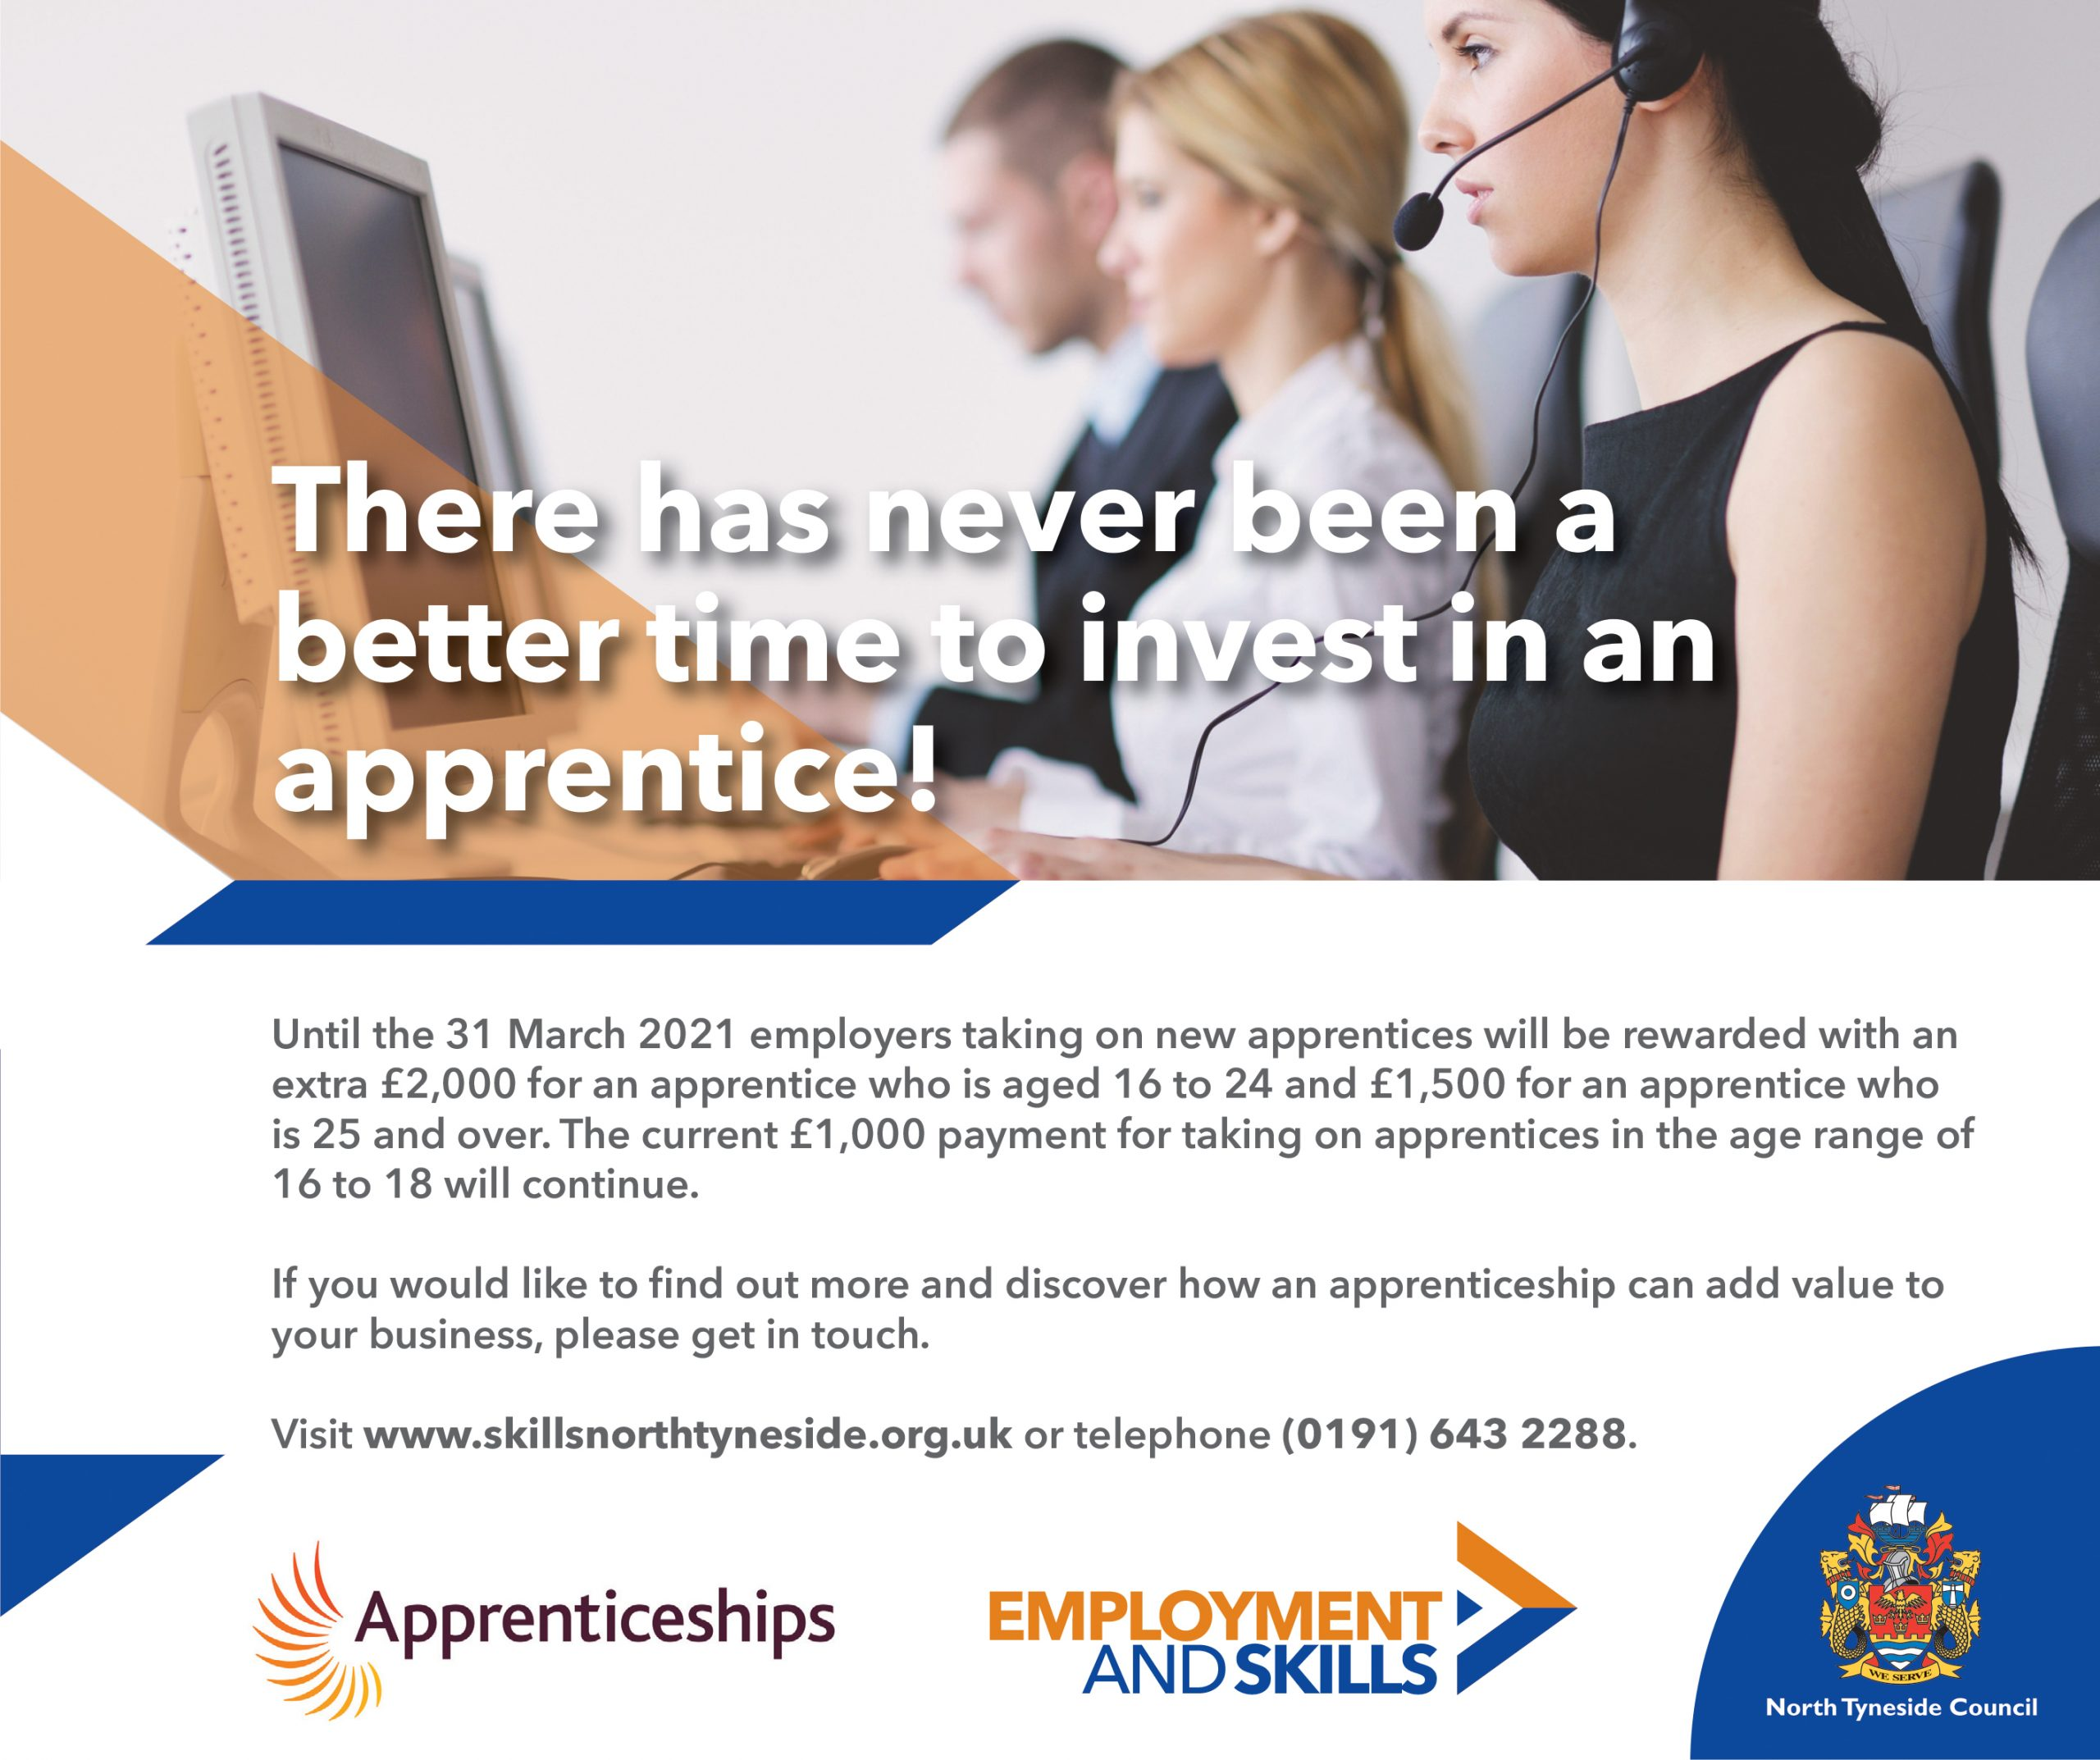 Extension to increased apprenticeship funding!